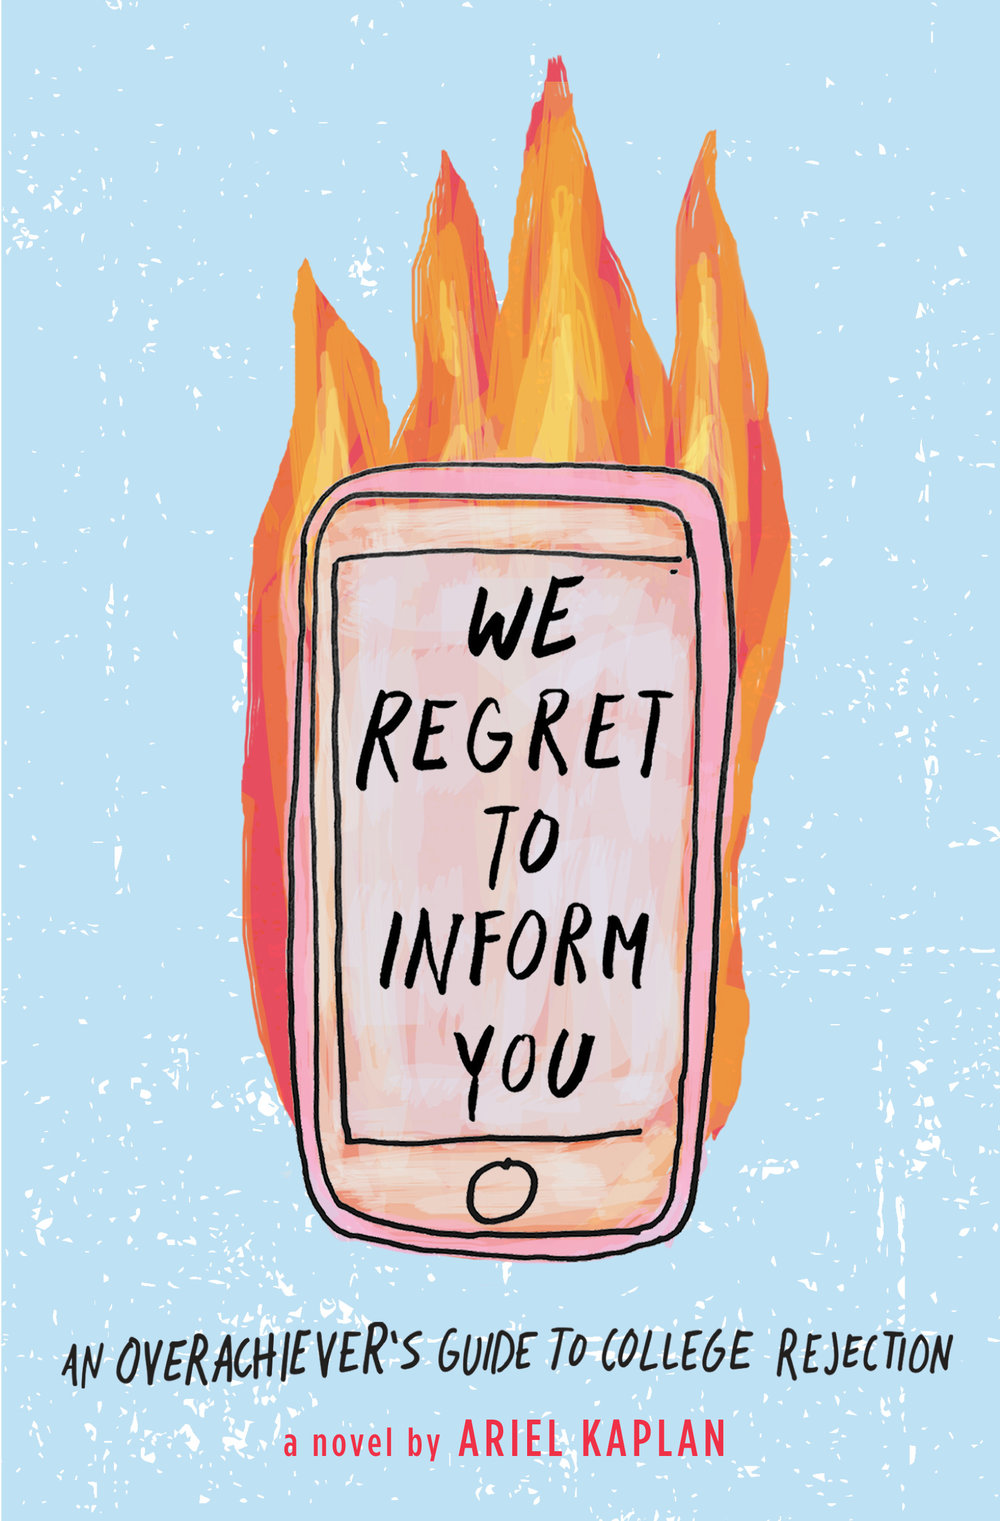 We-Regret-Cover.jpg